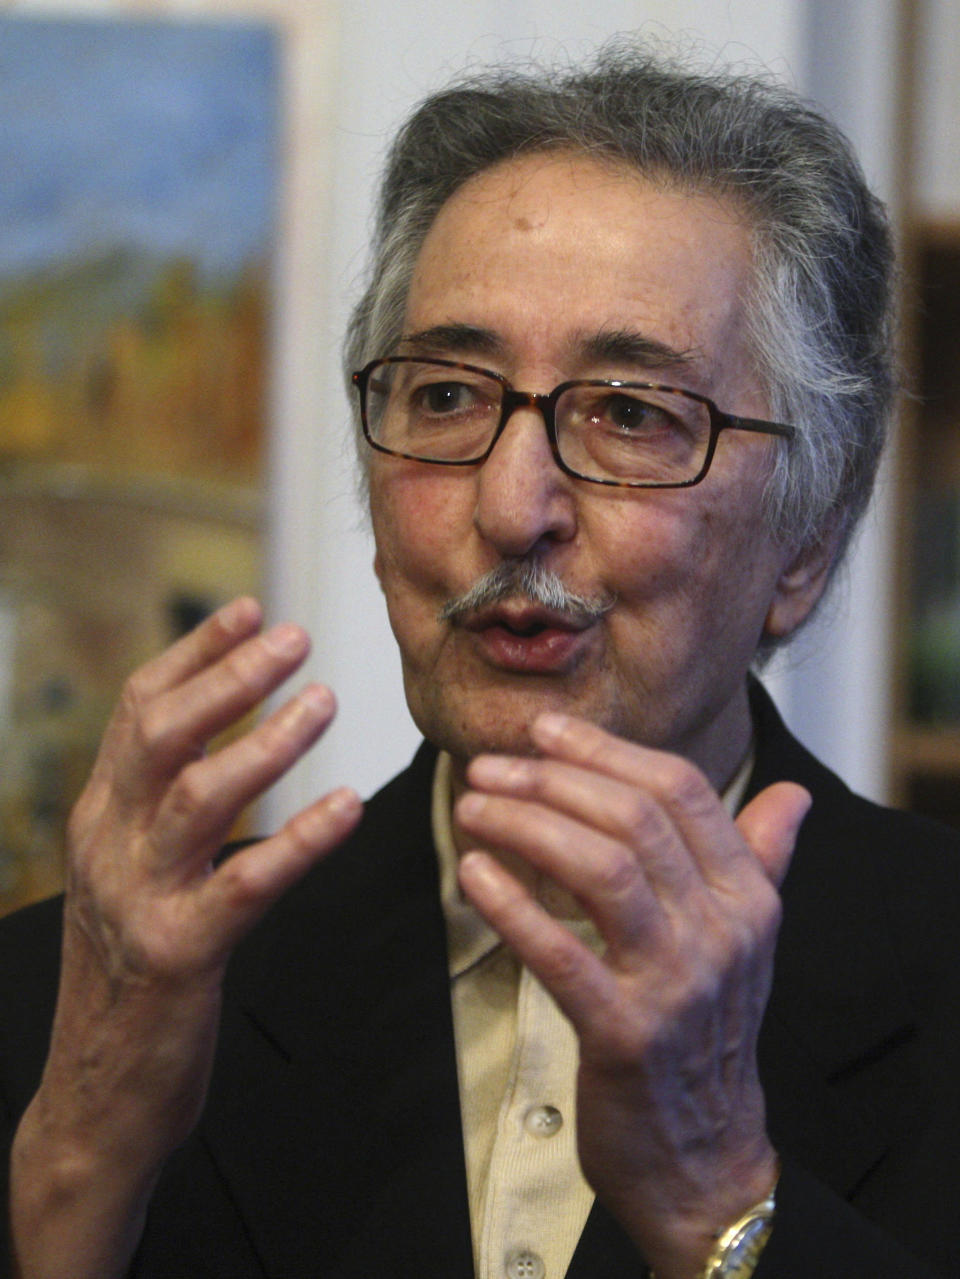 FILE — In this Dec. 30, 2009, file photo, former Iranian President Abolhassan Banisadr, gestures as he speaks during an interview with the Associated Press in Versailles, west of Paris, France. Banisadr, Iran's first president after the country's 1979 Islamic Revolution who fled Tehran after being impeached for challenging the growing power of clerics as the nation became a theocracy, died Saturday, Oct. 9. 2021. He was 88. (AP Photo/Michel Euler, File)